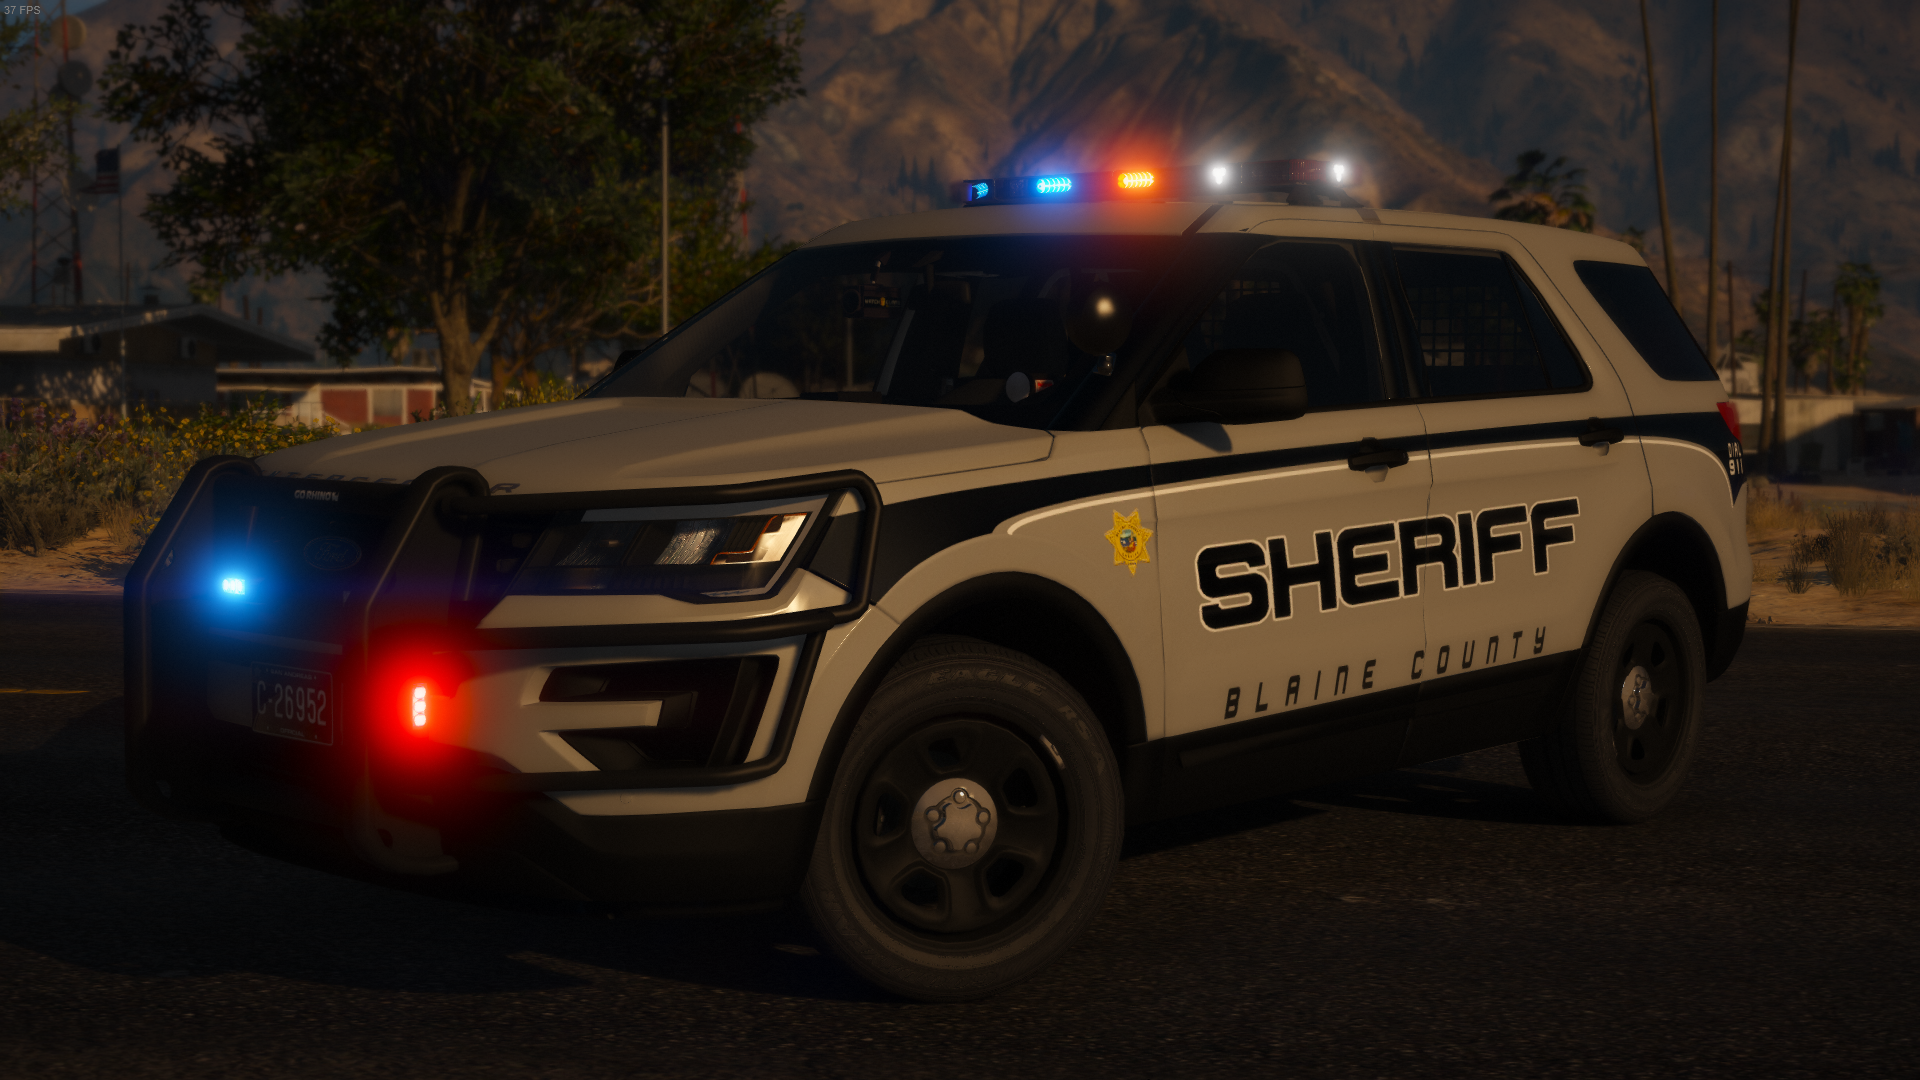 ELS] Blaine County Sheriff Pack - Kilroy95's Content